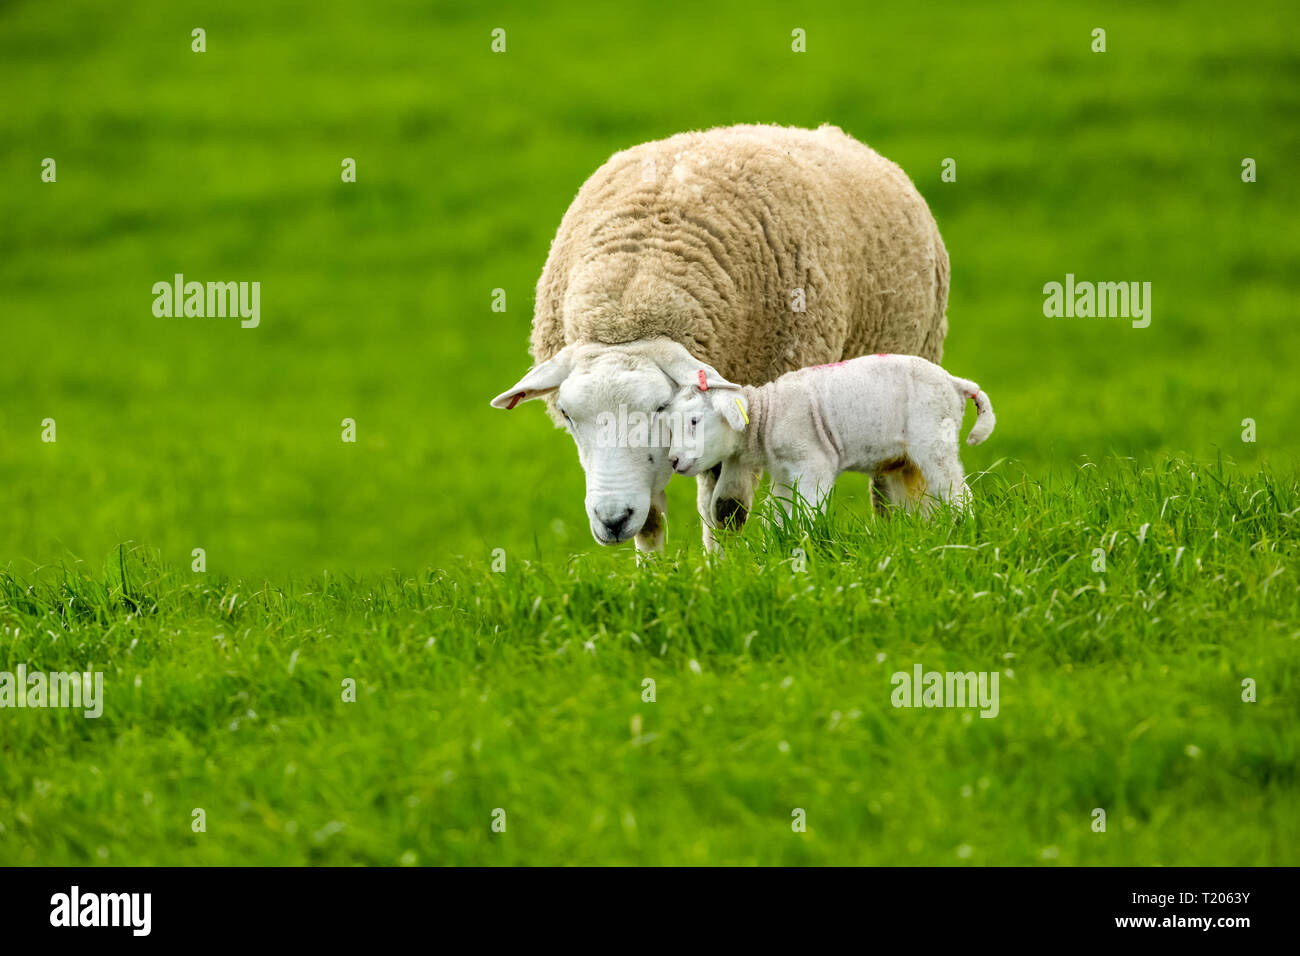 Texel Ewe, female sheep with newborn lamb.  A tender moment between mother and baby lamb in lush green meadow. Landscape, Horizontal. Space for copy - Stock Image